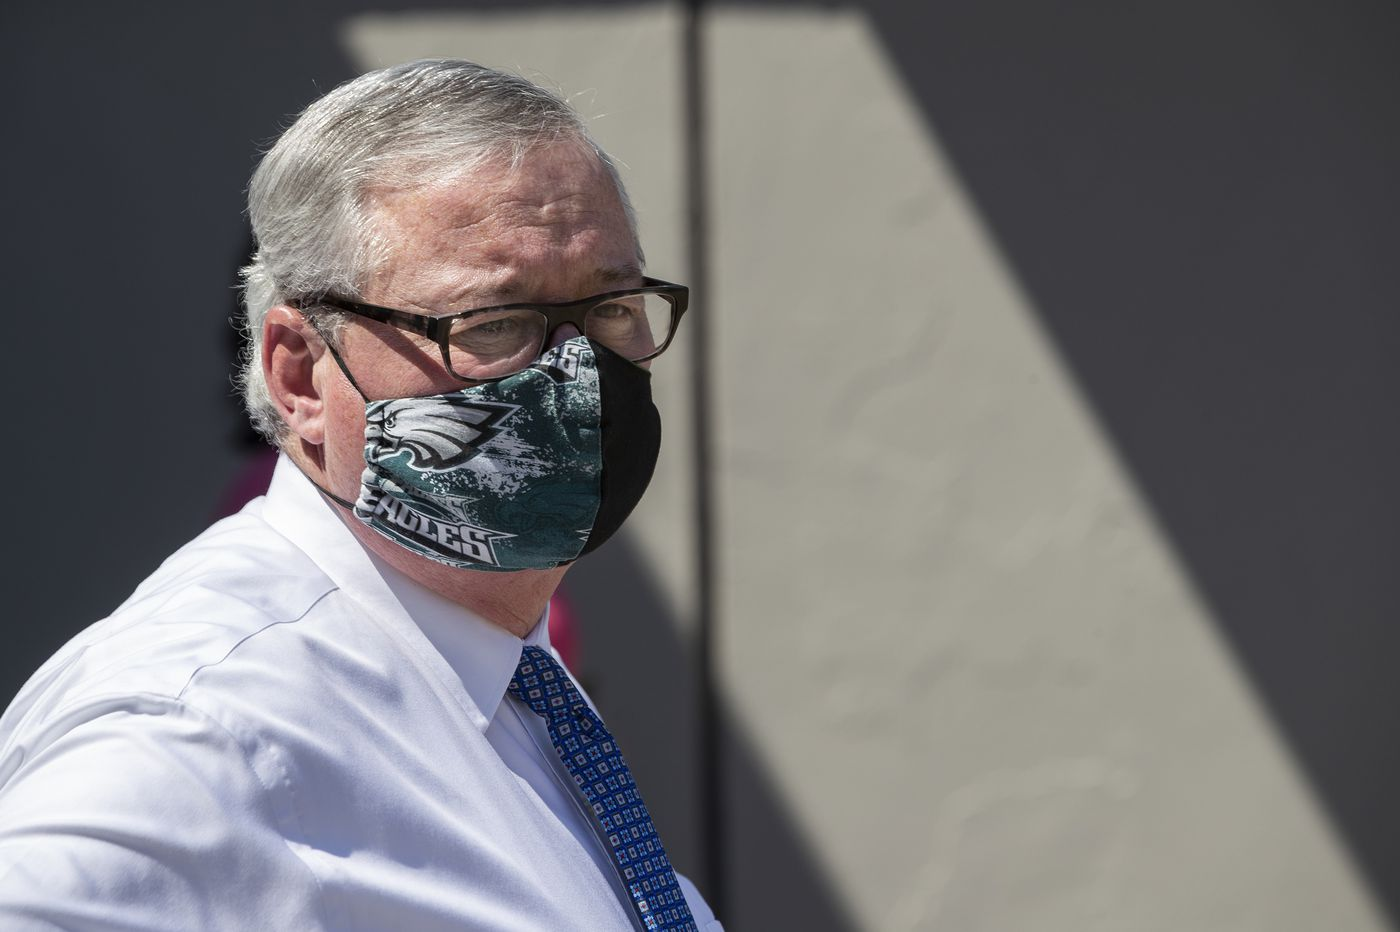 Masks now mandatory in Philly as officials show concern over new virus cases; suburban counties go 'green'